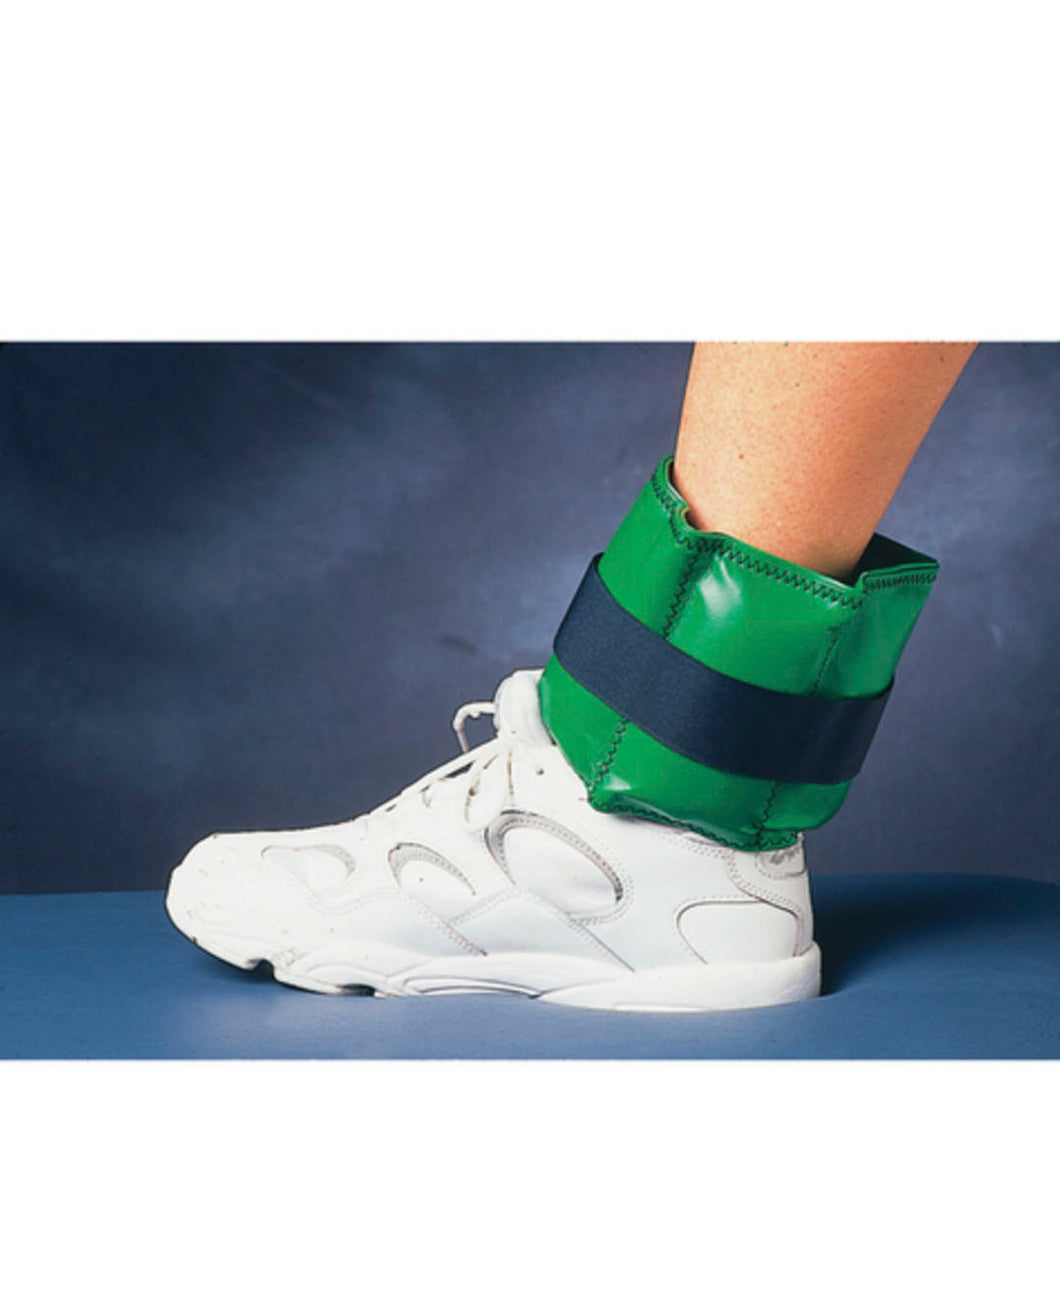 Set of 2 Ankle Weights - 1.5 Pounds